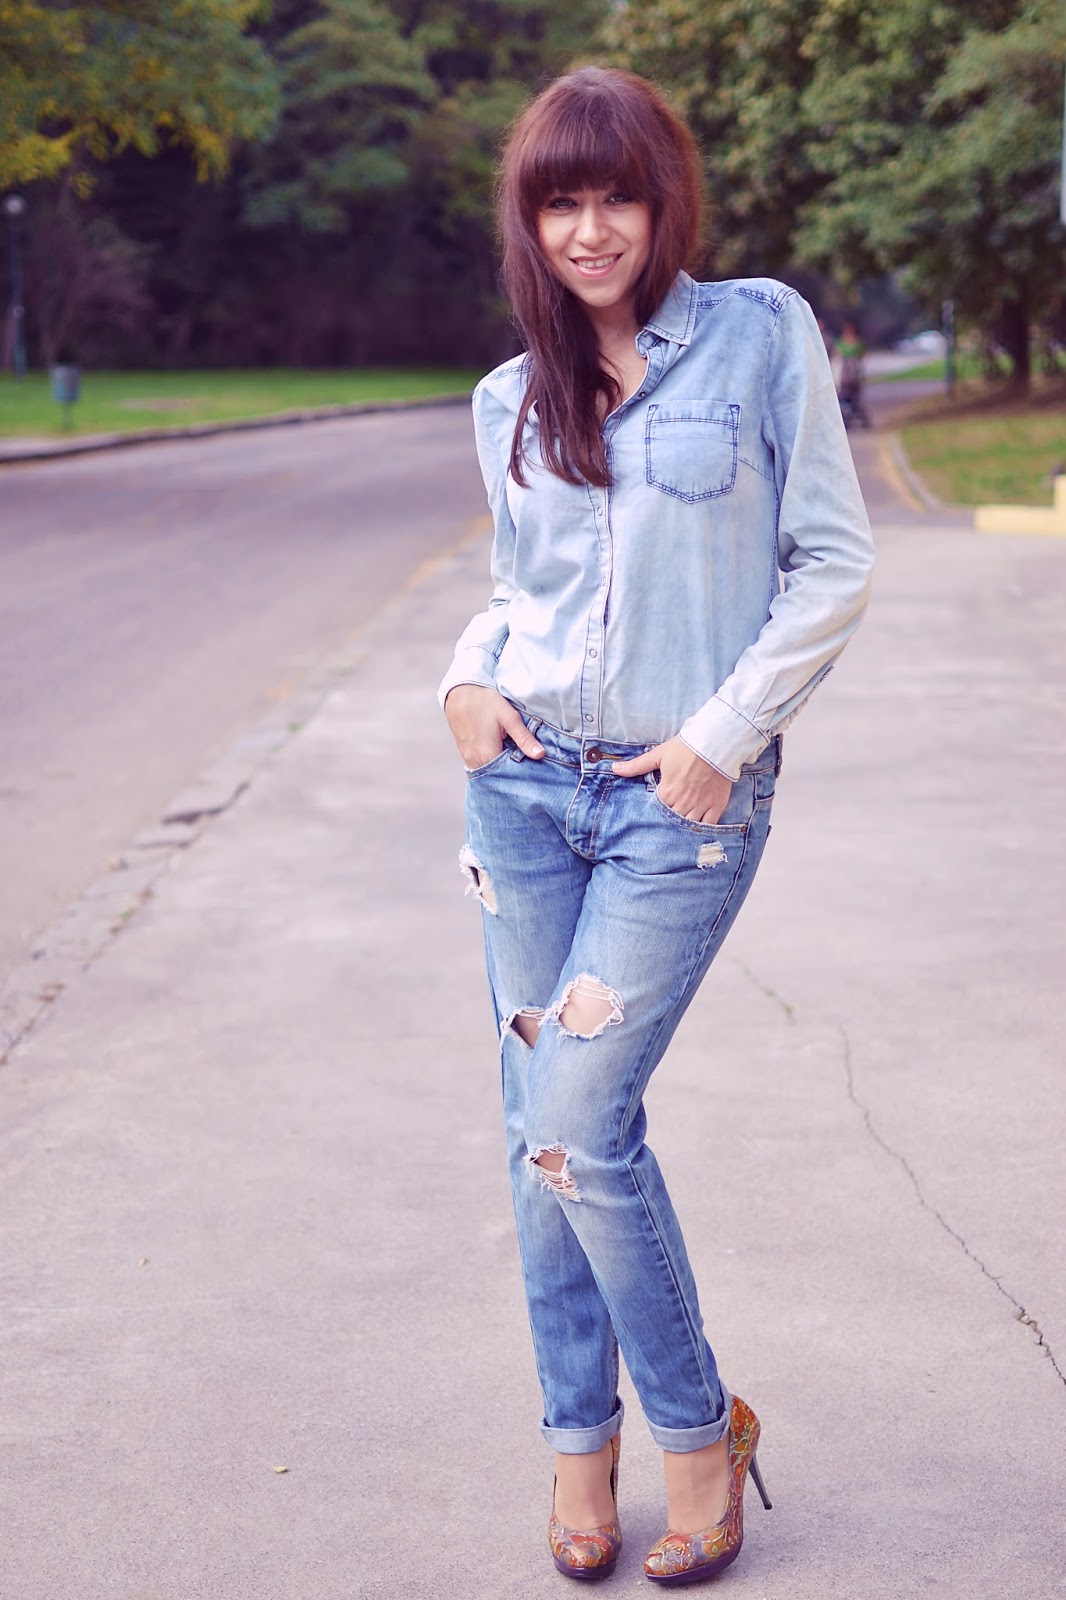 Niečo o mne_Katharine-fashion is beautiful_Denim on Denim_Katarína Jakubčová_Fashion blogger